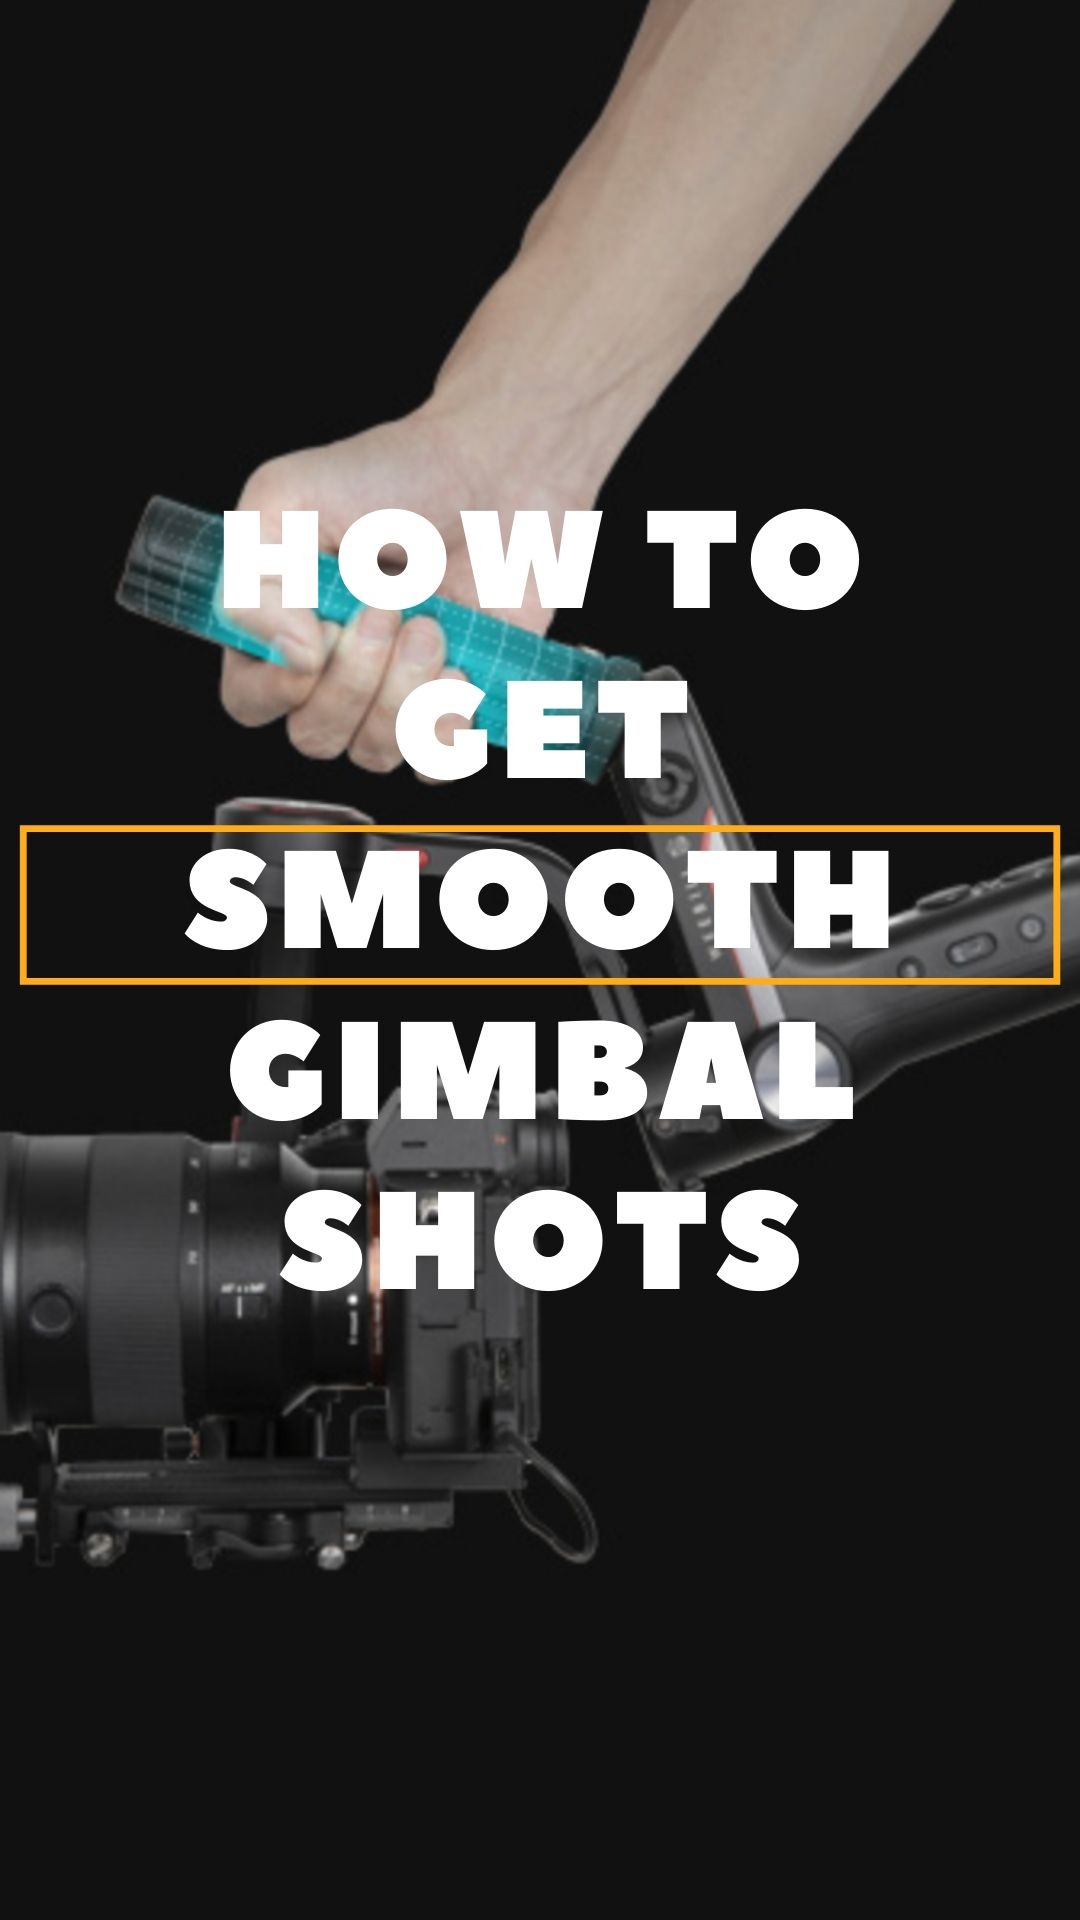 HOW TO GET SMOOTH GIMBAL SHOTS